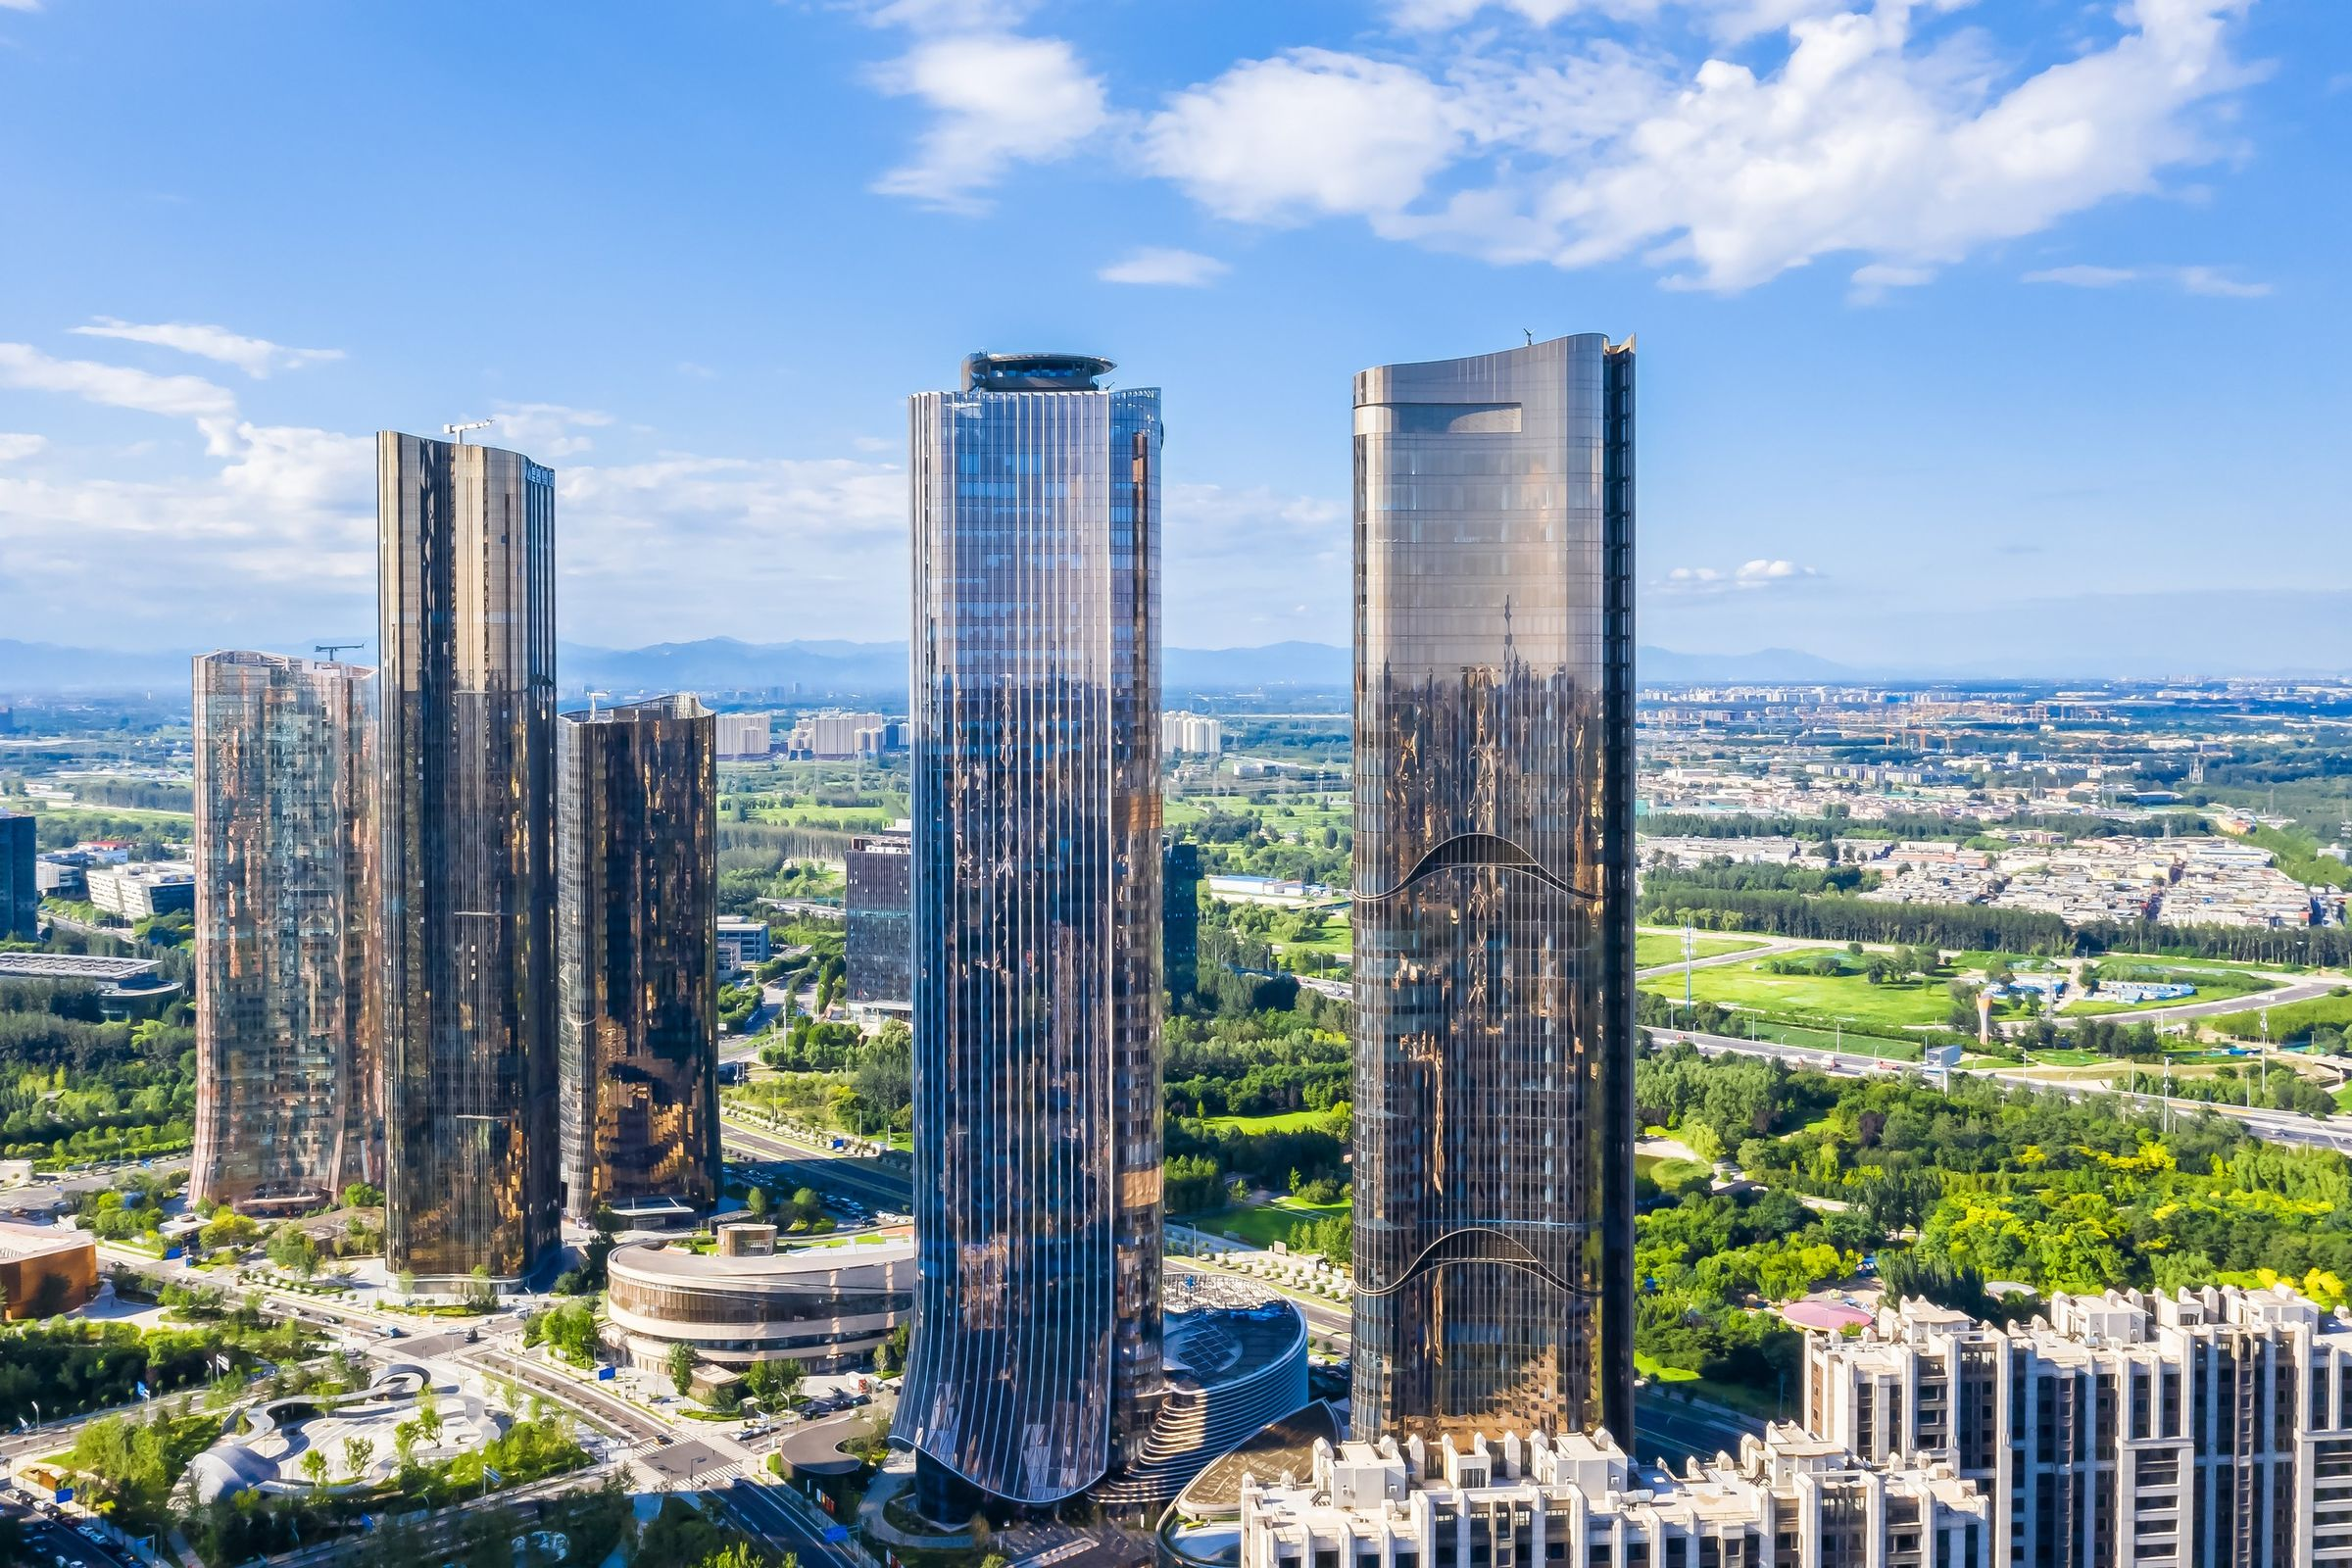 1Da Wang Jing Mixed-use Development, by Andrew Bromberg at Aedas_20_View of towers.jpg